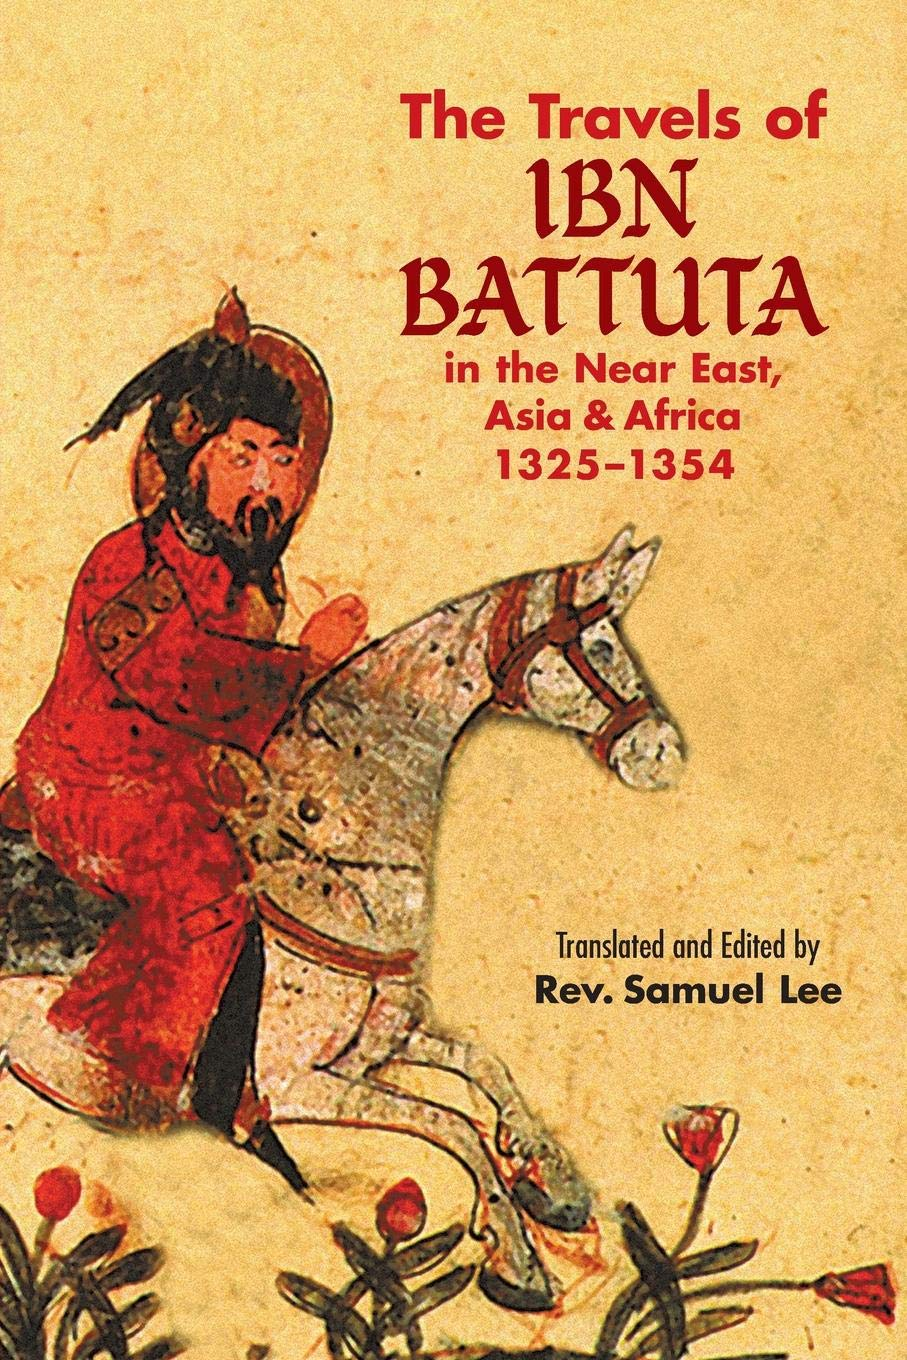 The Travels of Ibn Battuta: in the Near East, Asia and Africa, 1325-1354